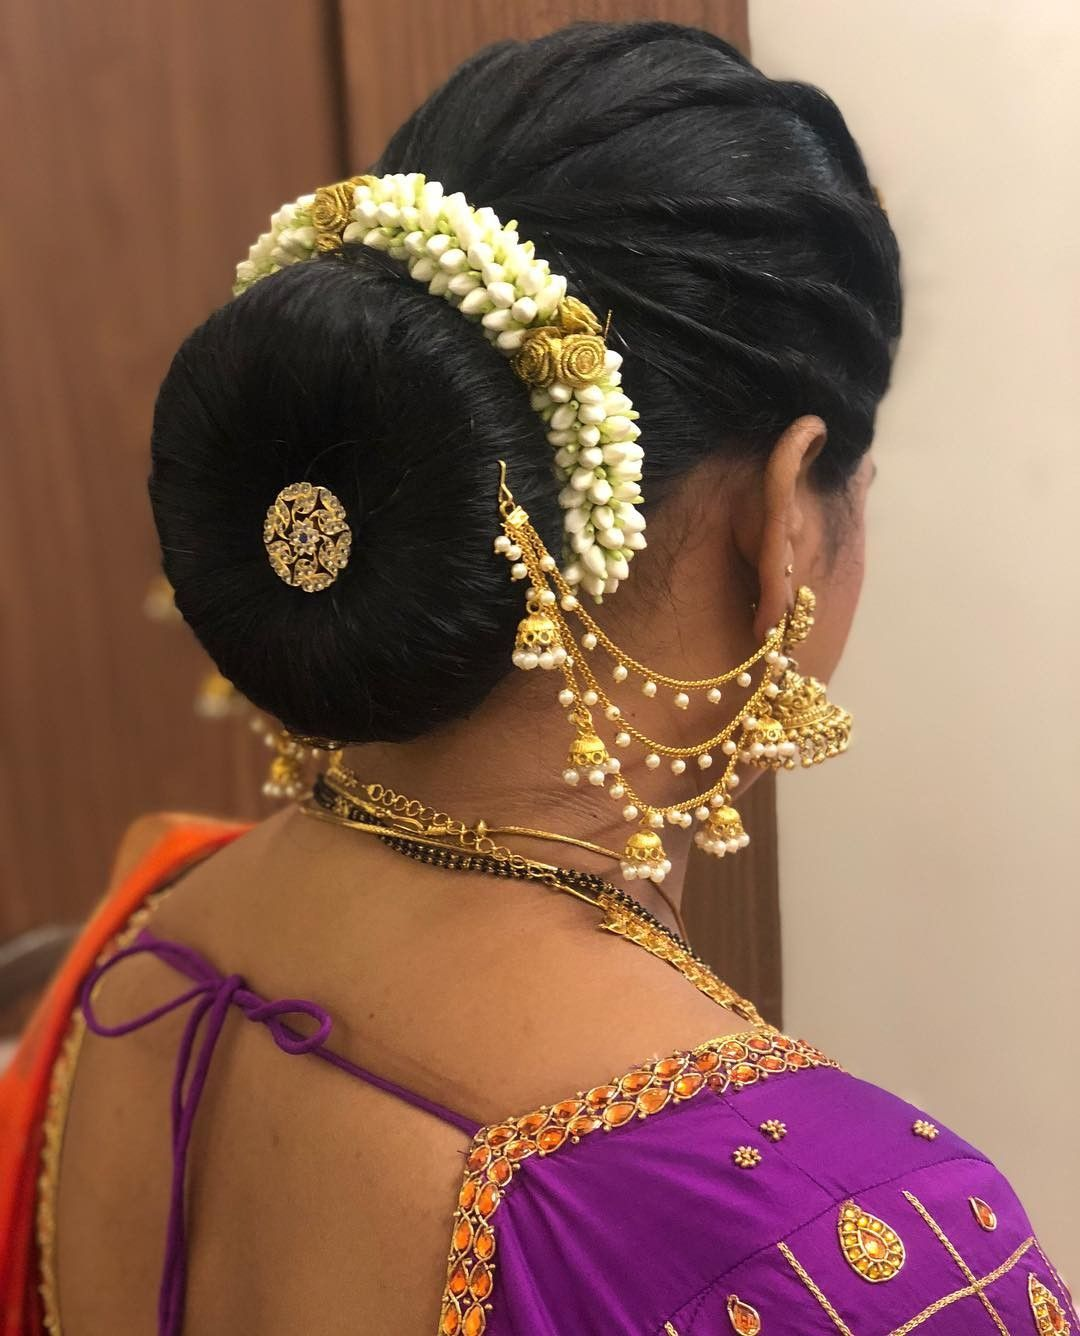 Wedding Juda Hairstyle Step By Step: What A Beautiful Large Low Bun With Real Flower Gajra